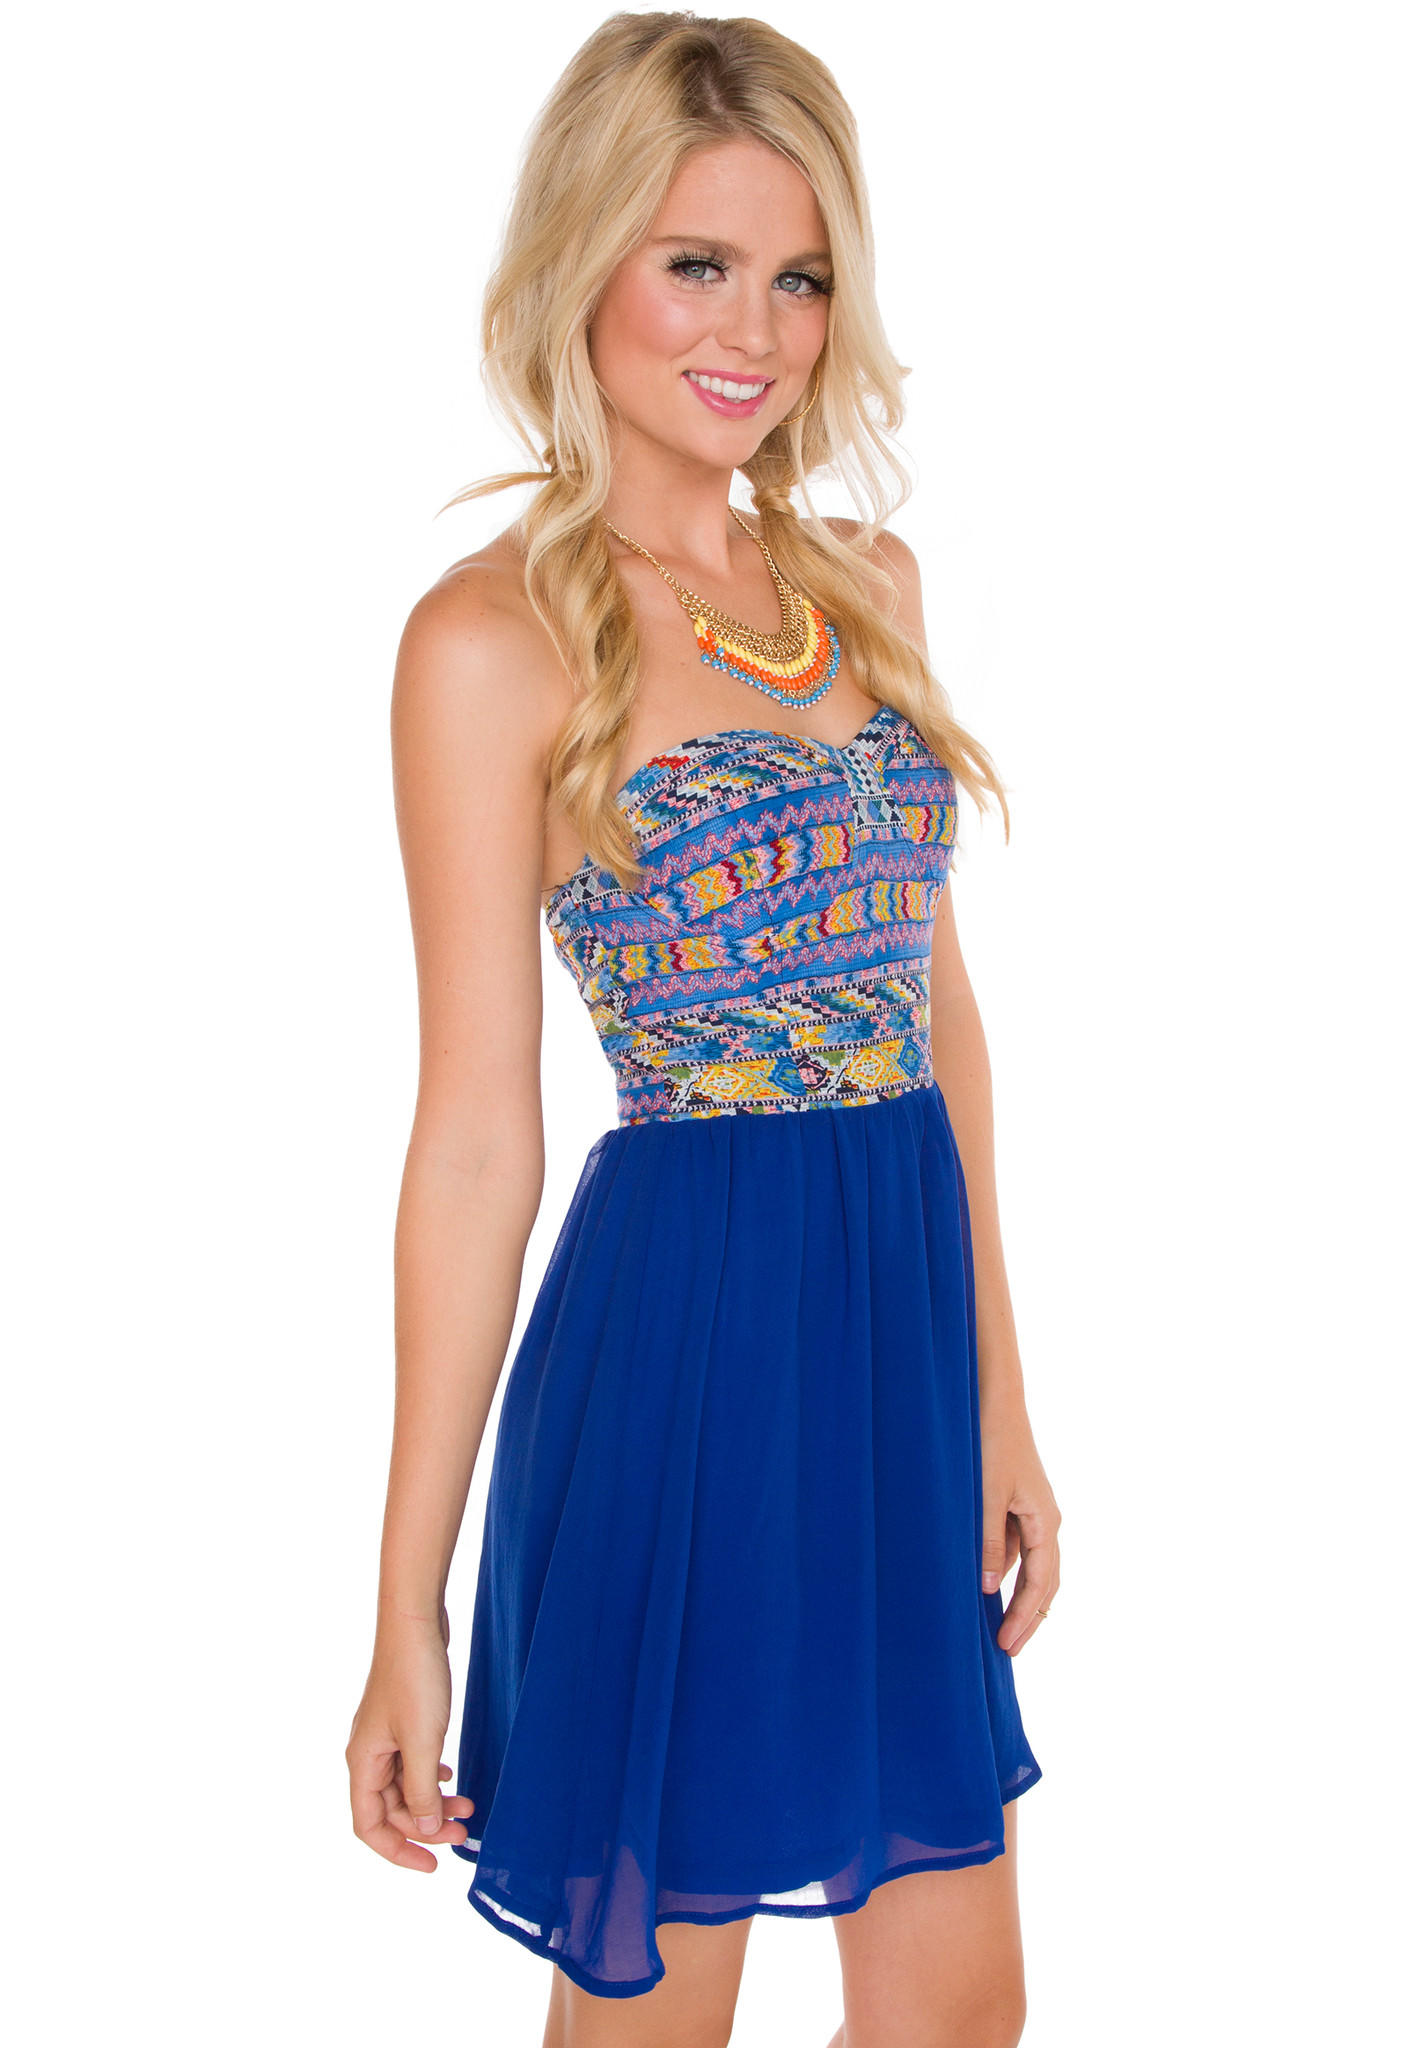 Organizing Shirts In Closet Nia Aztec Dress Blue From Shop Priceless New Arrivals